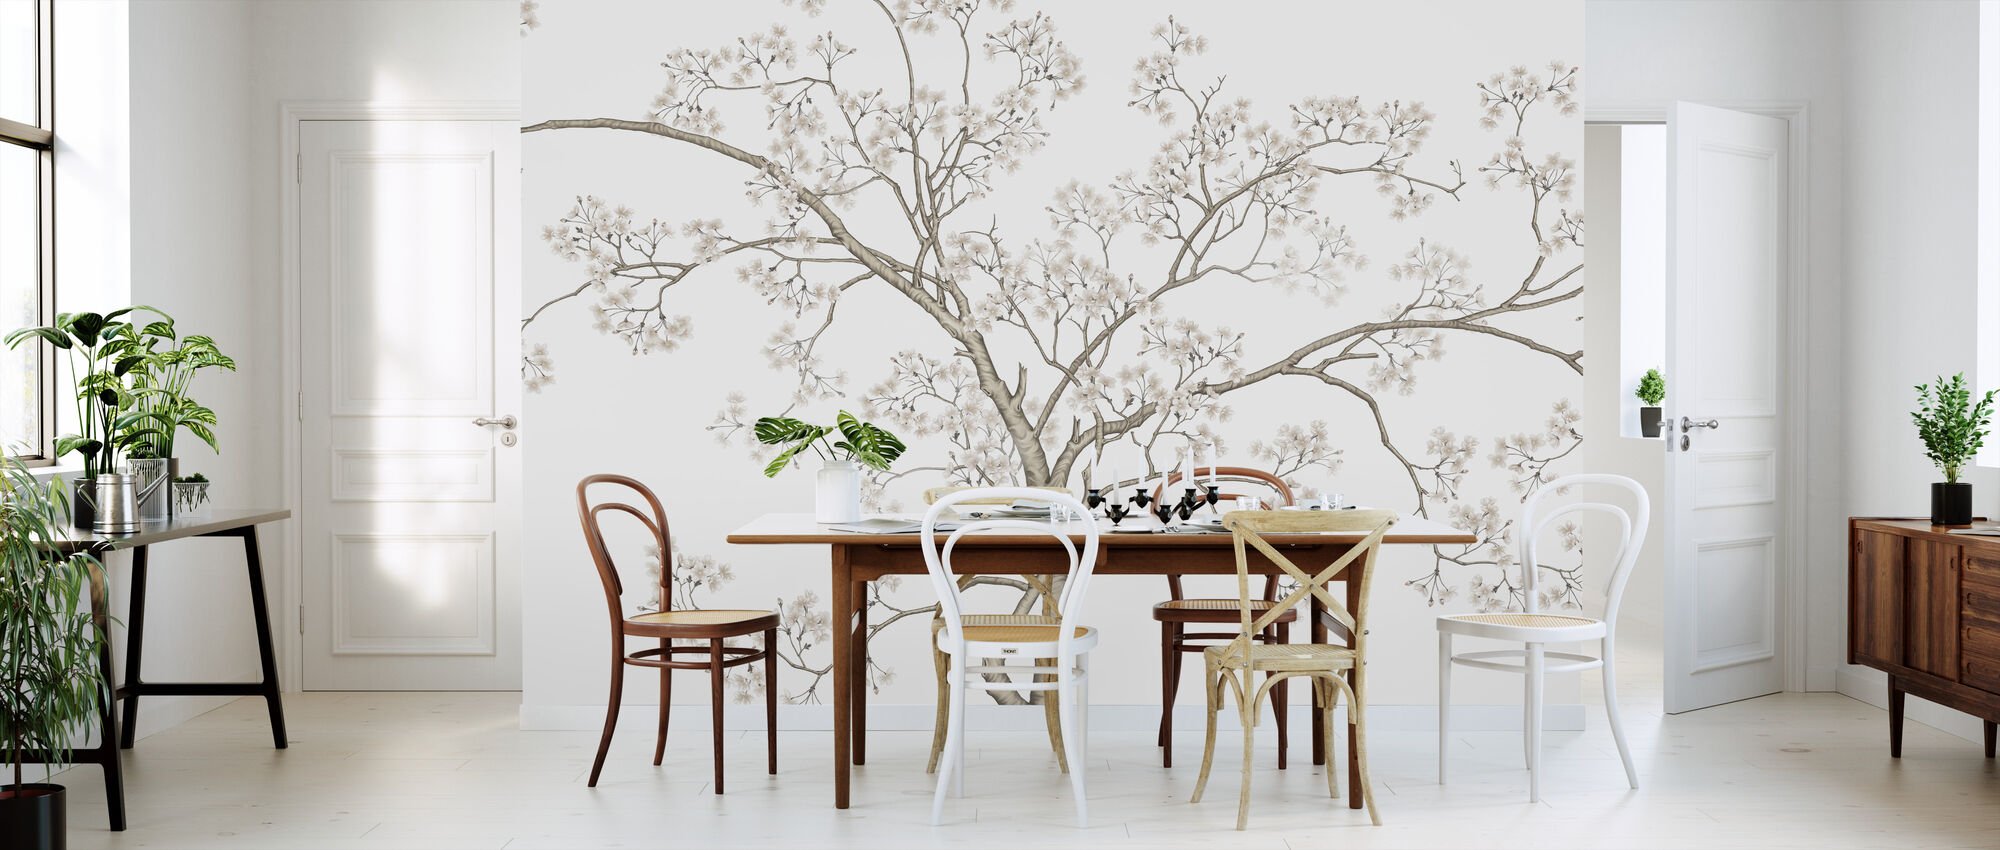 The Tree - Wallpaper - Kitchen